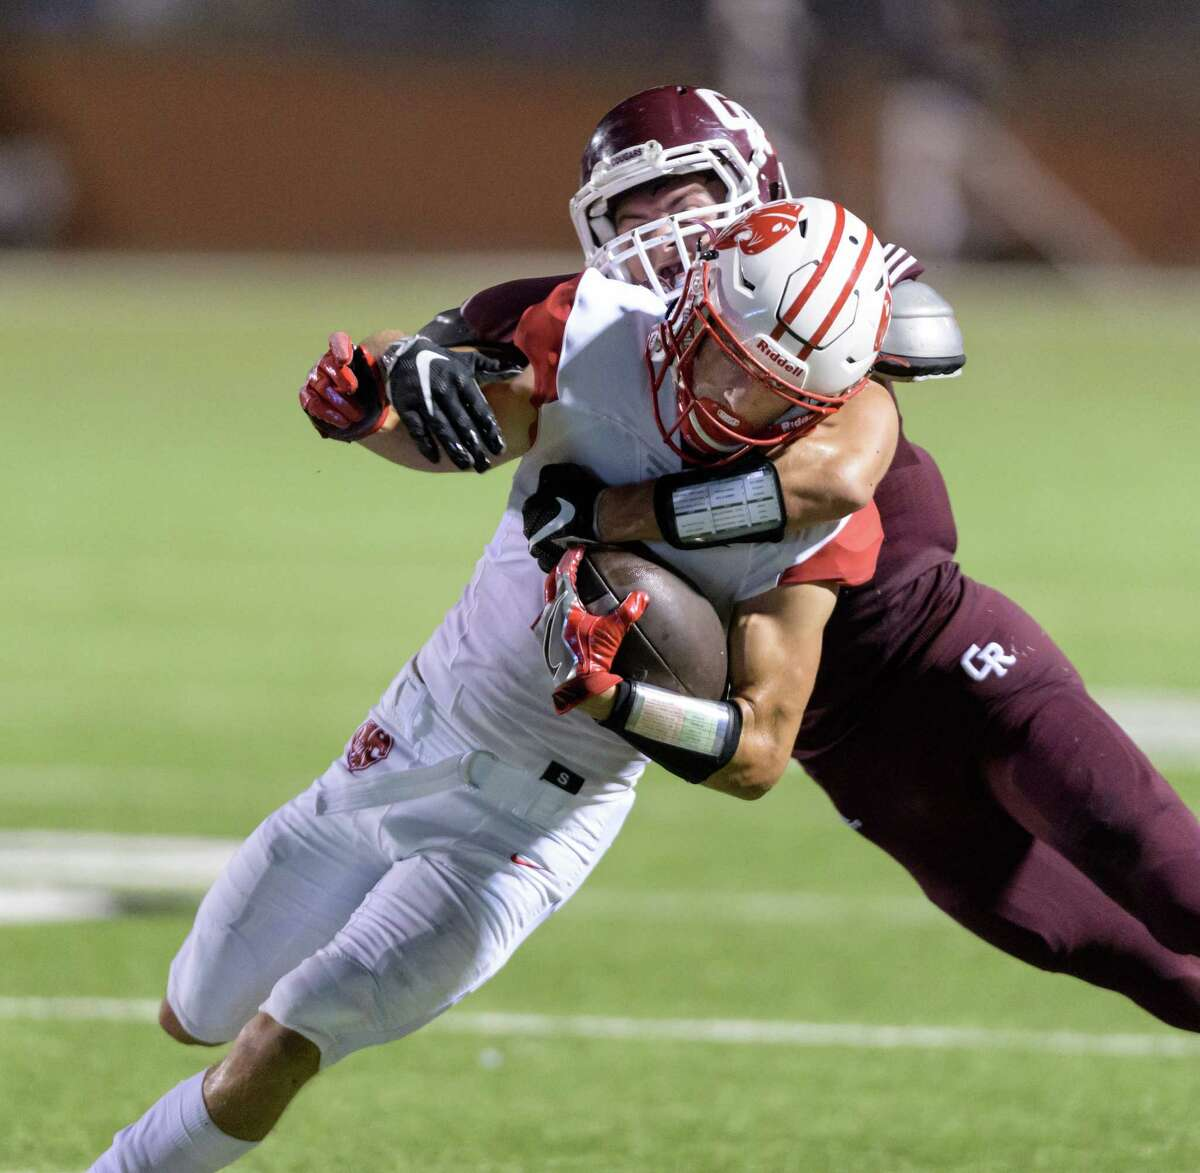 Jaxon Borowski (2) of the Katy Tigers is brought down in the first half after a short reception by Devon Wygal (23) of the Cinco Ranch Cougars in a high school football game on Friday, September 16, 2016 at Rhodes Stadium in Katy Texas.